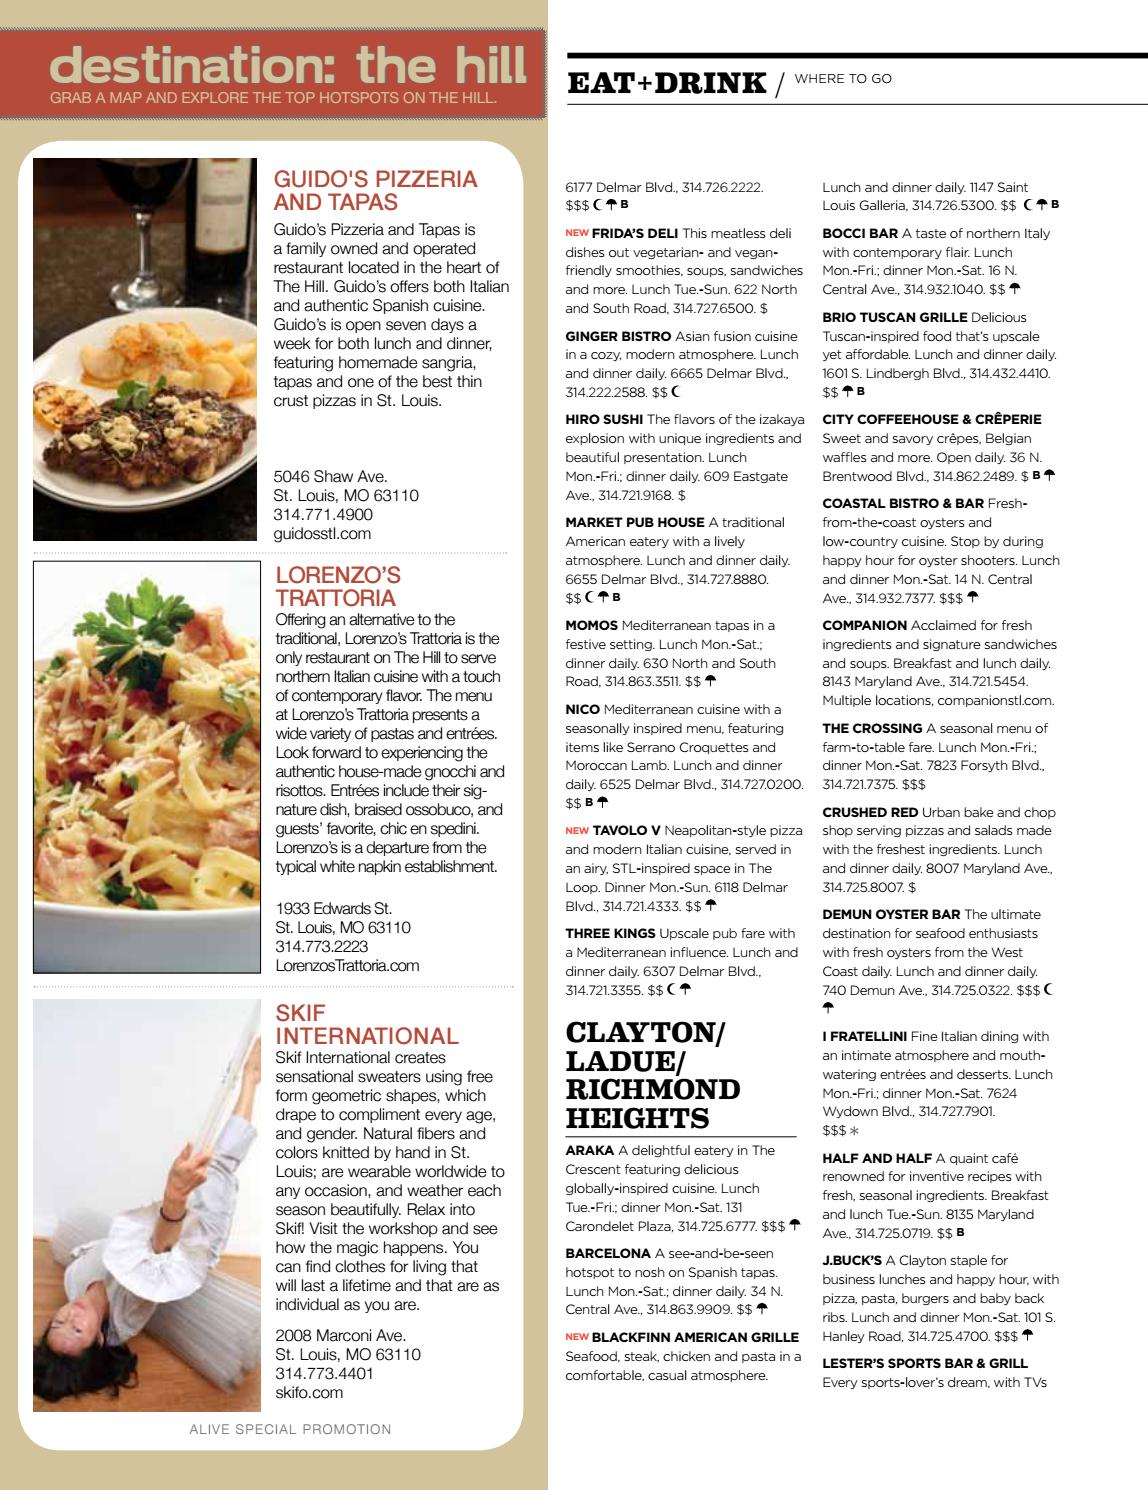 Tavolo V Delmar Menu Alive Magazine October 2012